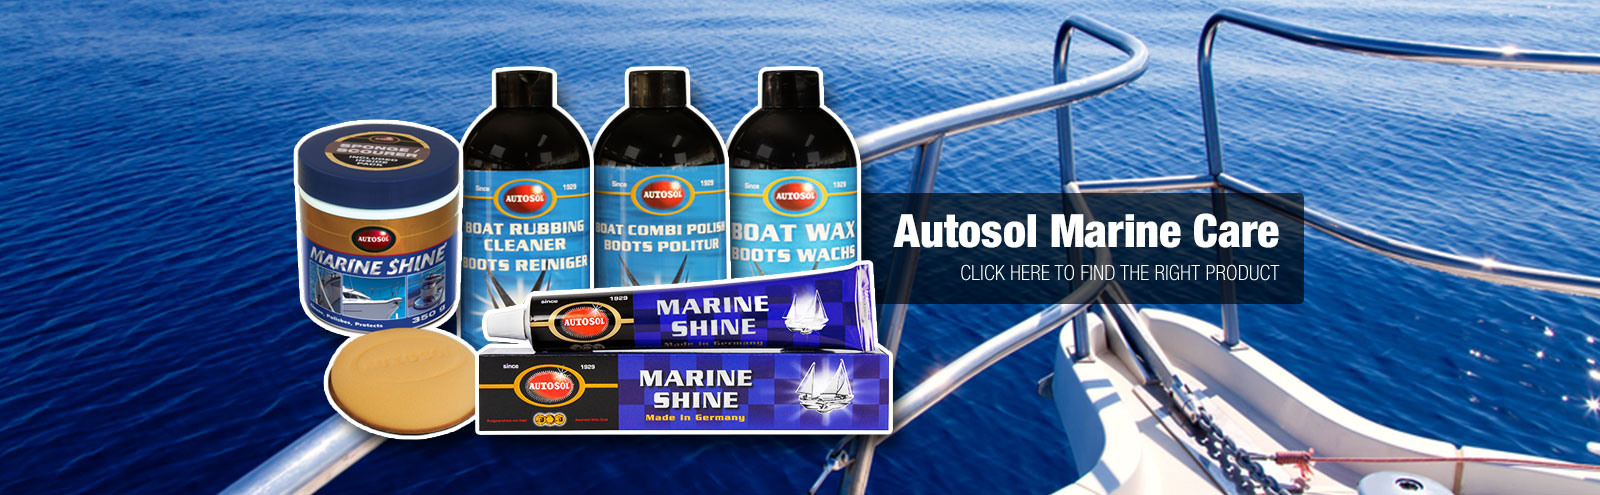 autosol-marine-products